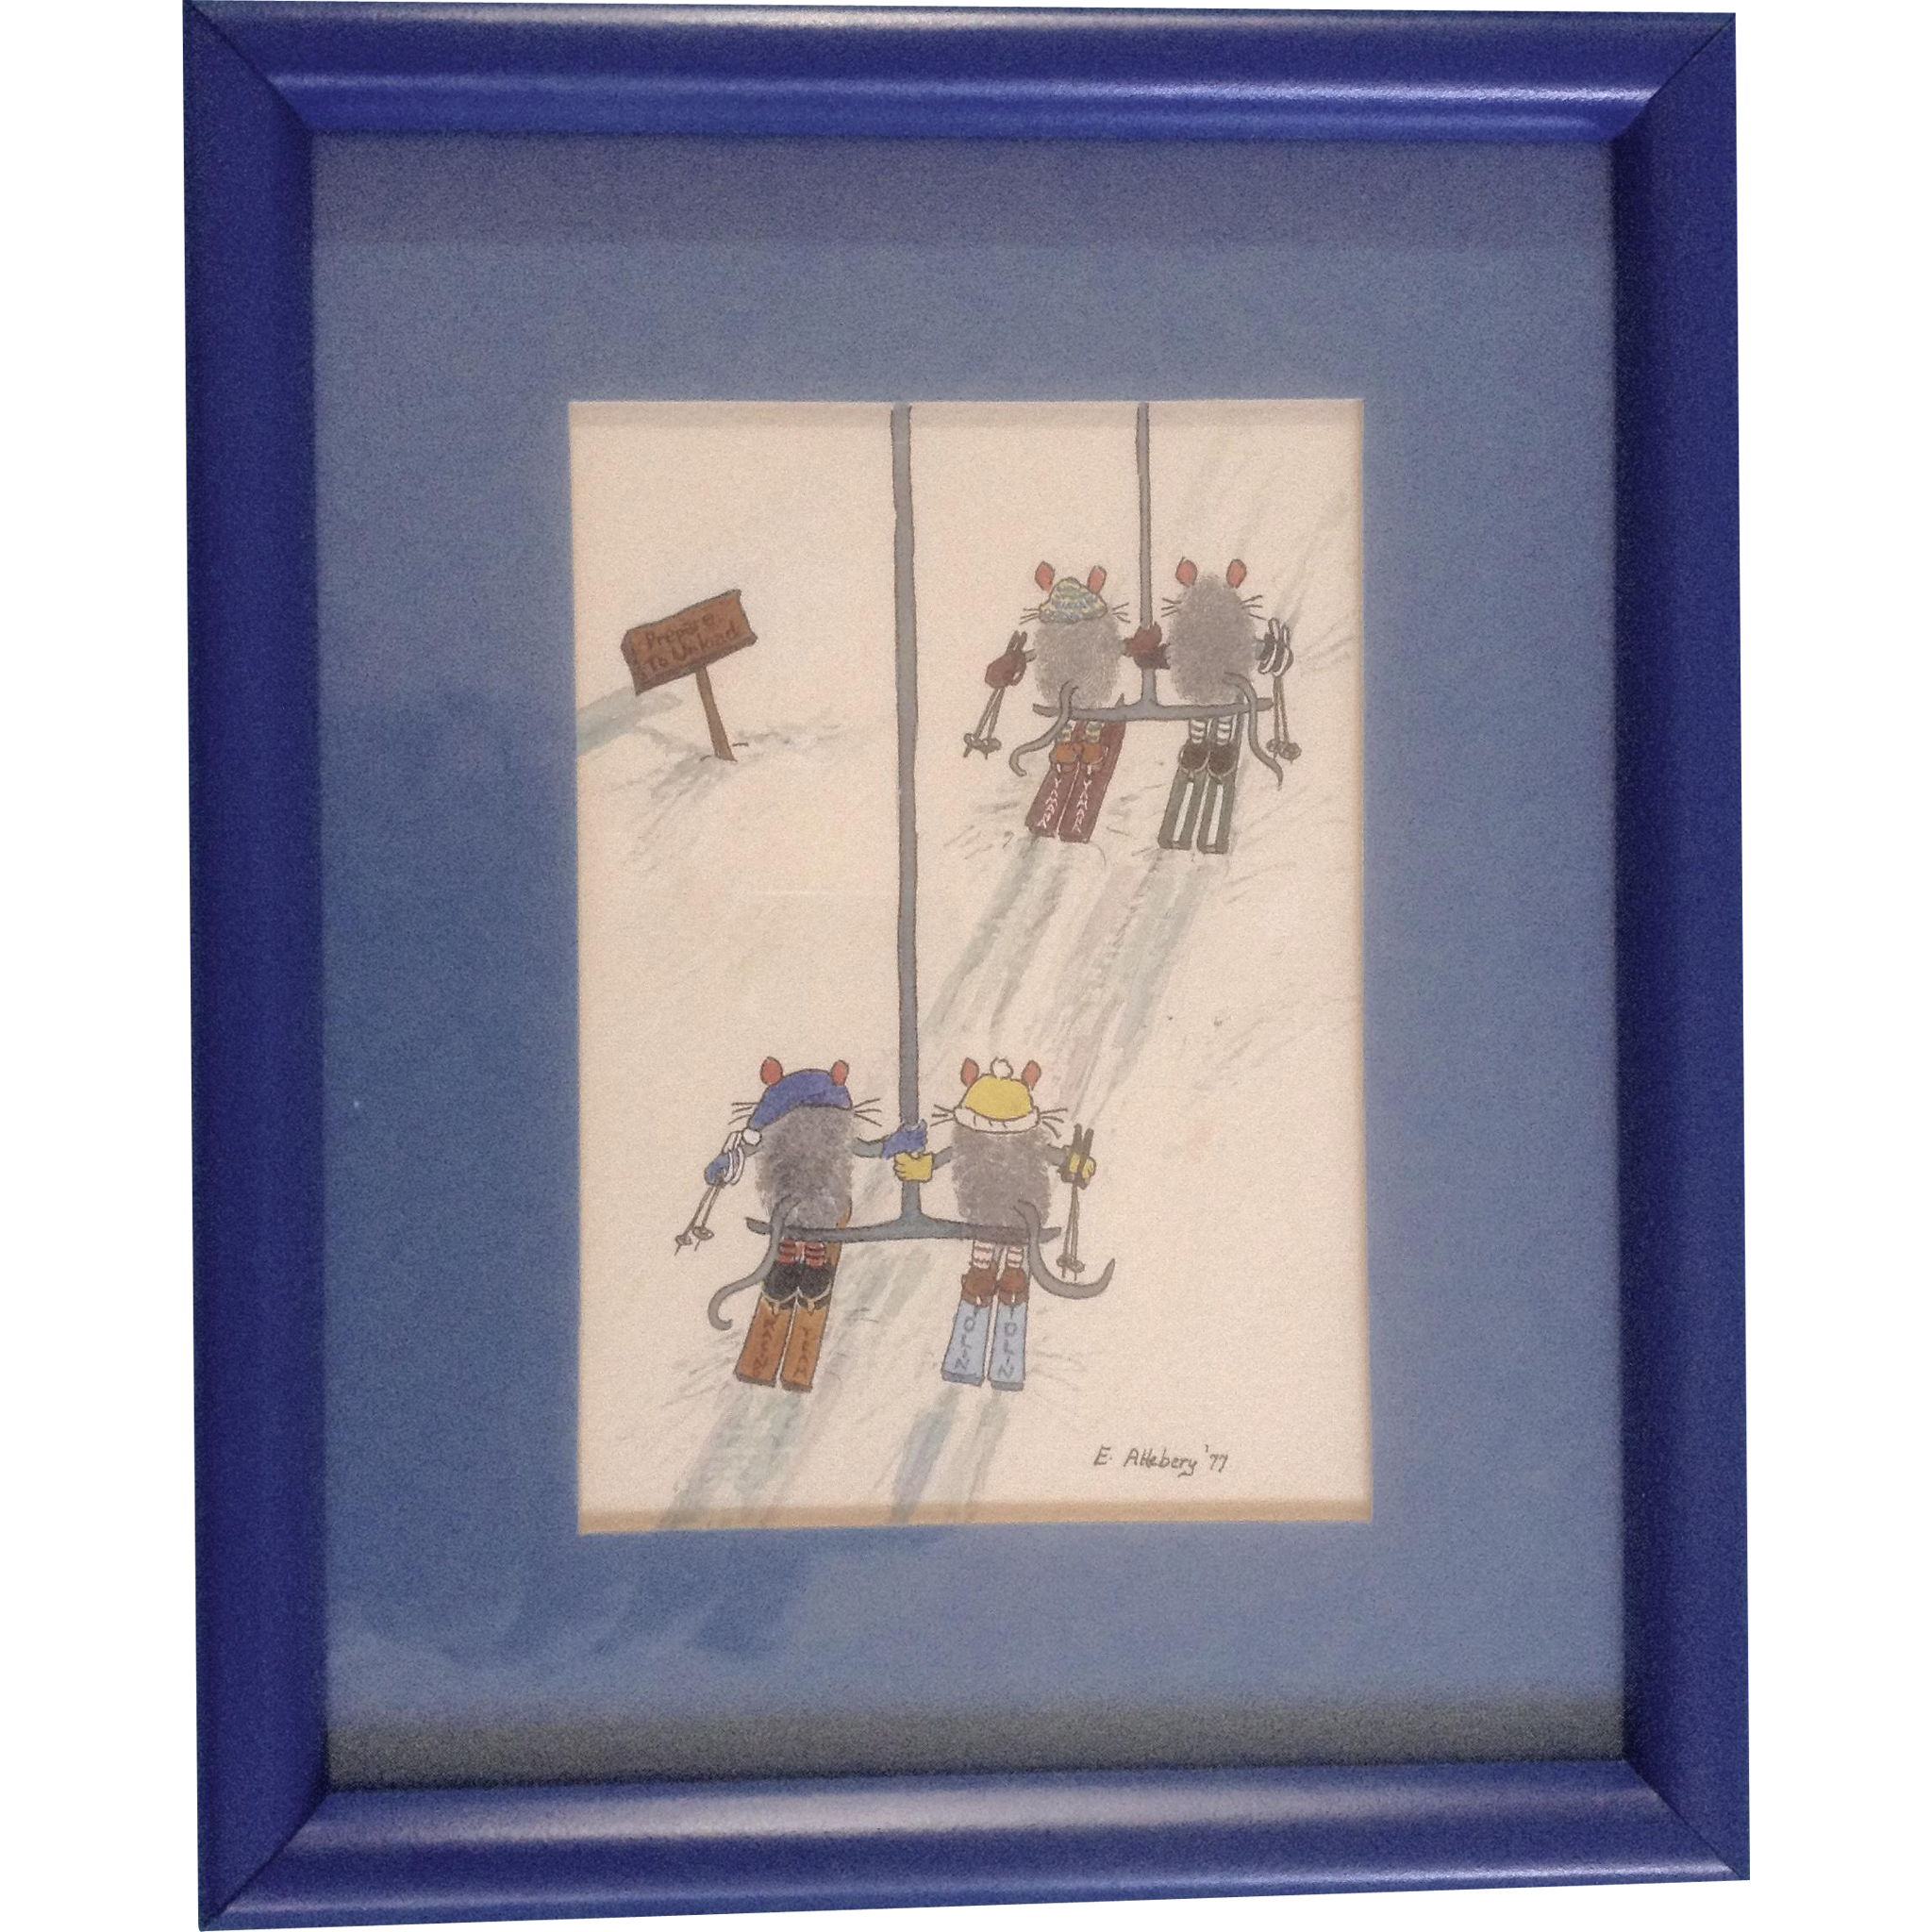 Mice skiers on chair lift mixed media works on paper signed by artist